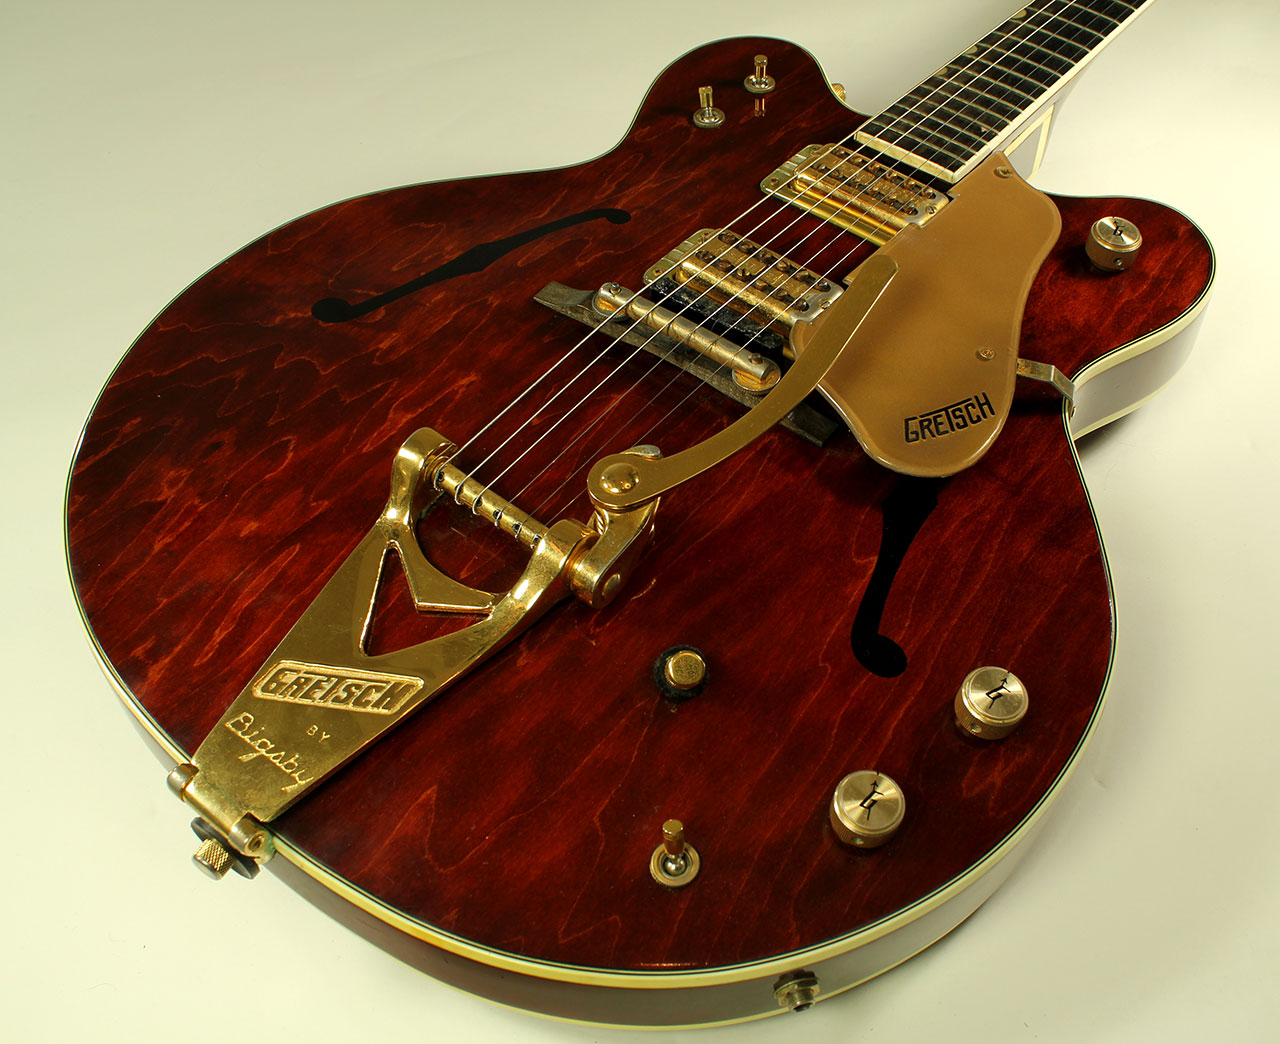 Gretsch-country-gent-1968-cons-top-2